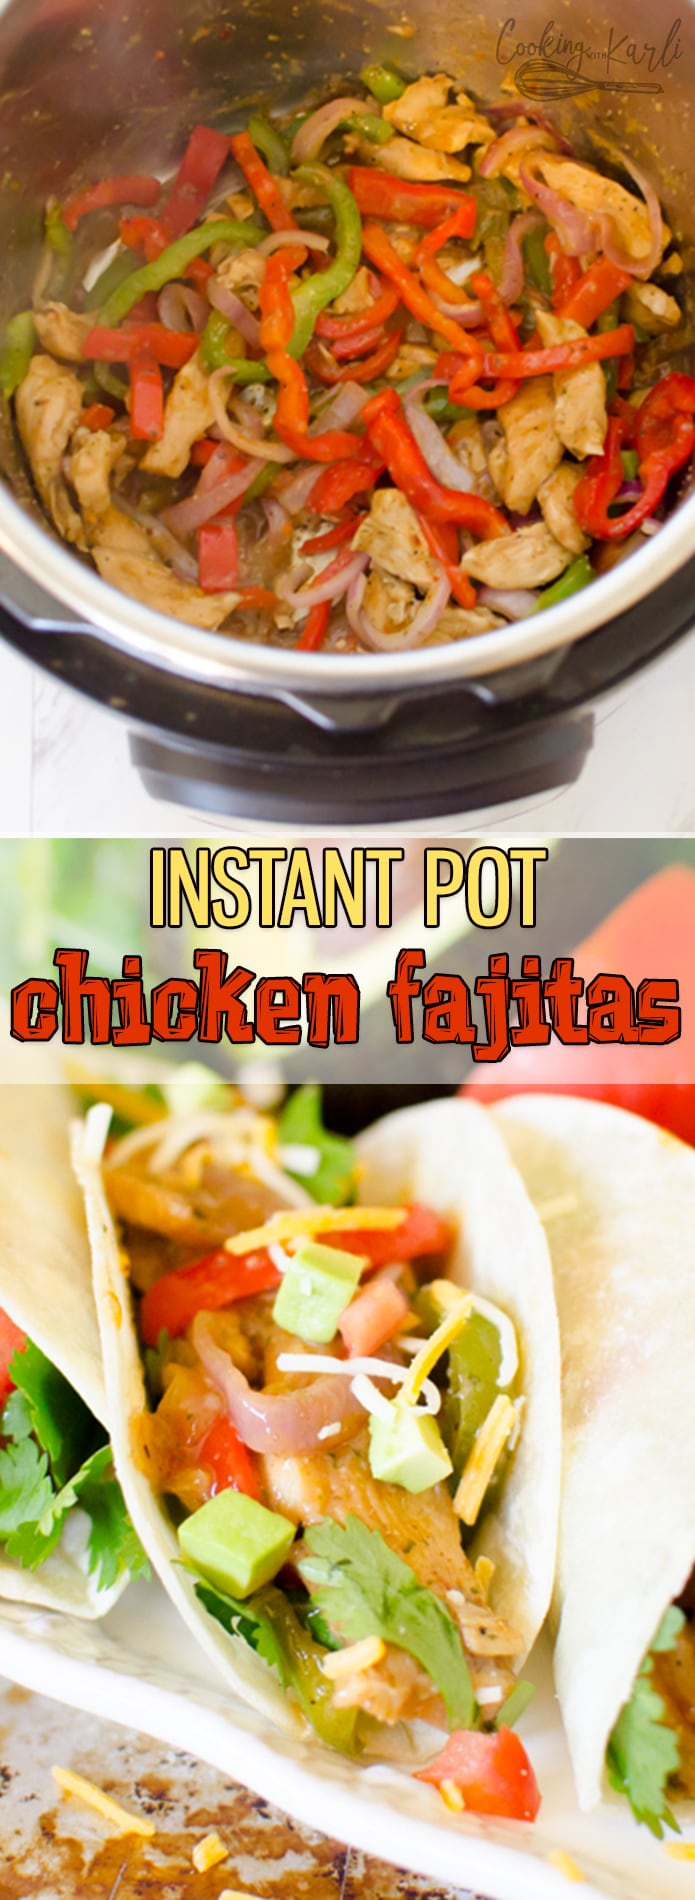 Instant Pot Chicken Fajitas are exploding with flavor, extremely fast and easy. The crispy bell peppers and onions paired with the perfectly cooked chicken slices wrapped in a warm tortilla make the fastest, tastiest week-night meal to date! |Cooking with Karli| #instantpot #chicken #fajitas #weeknight #meal #easy #fast #recipe